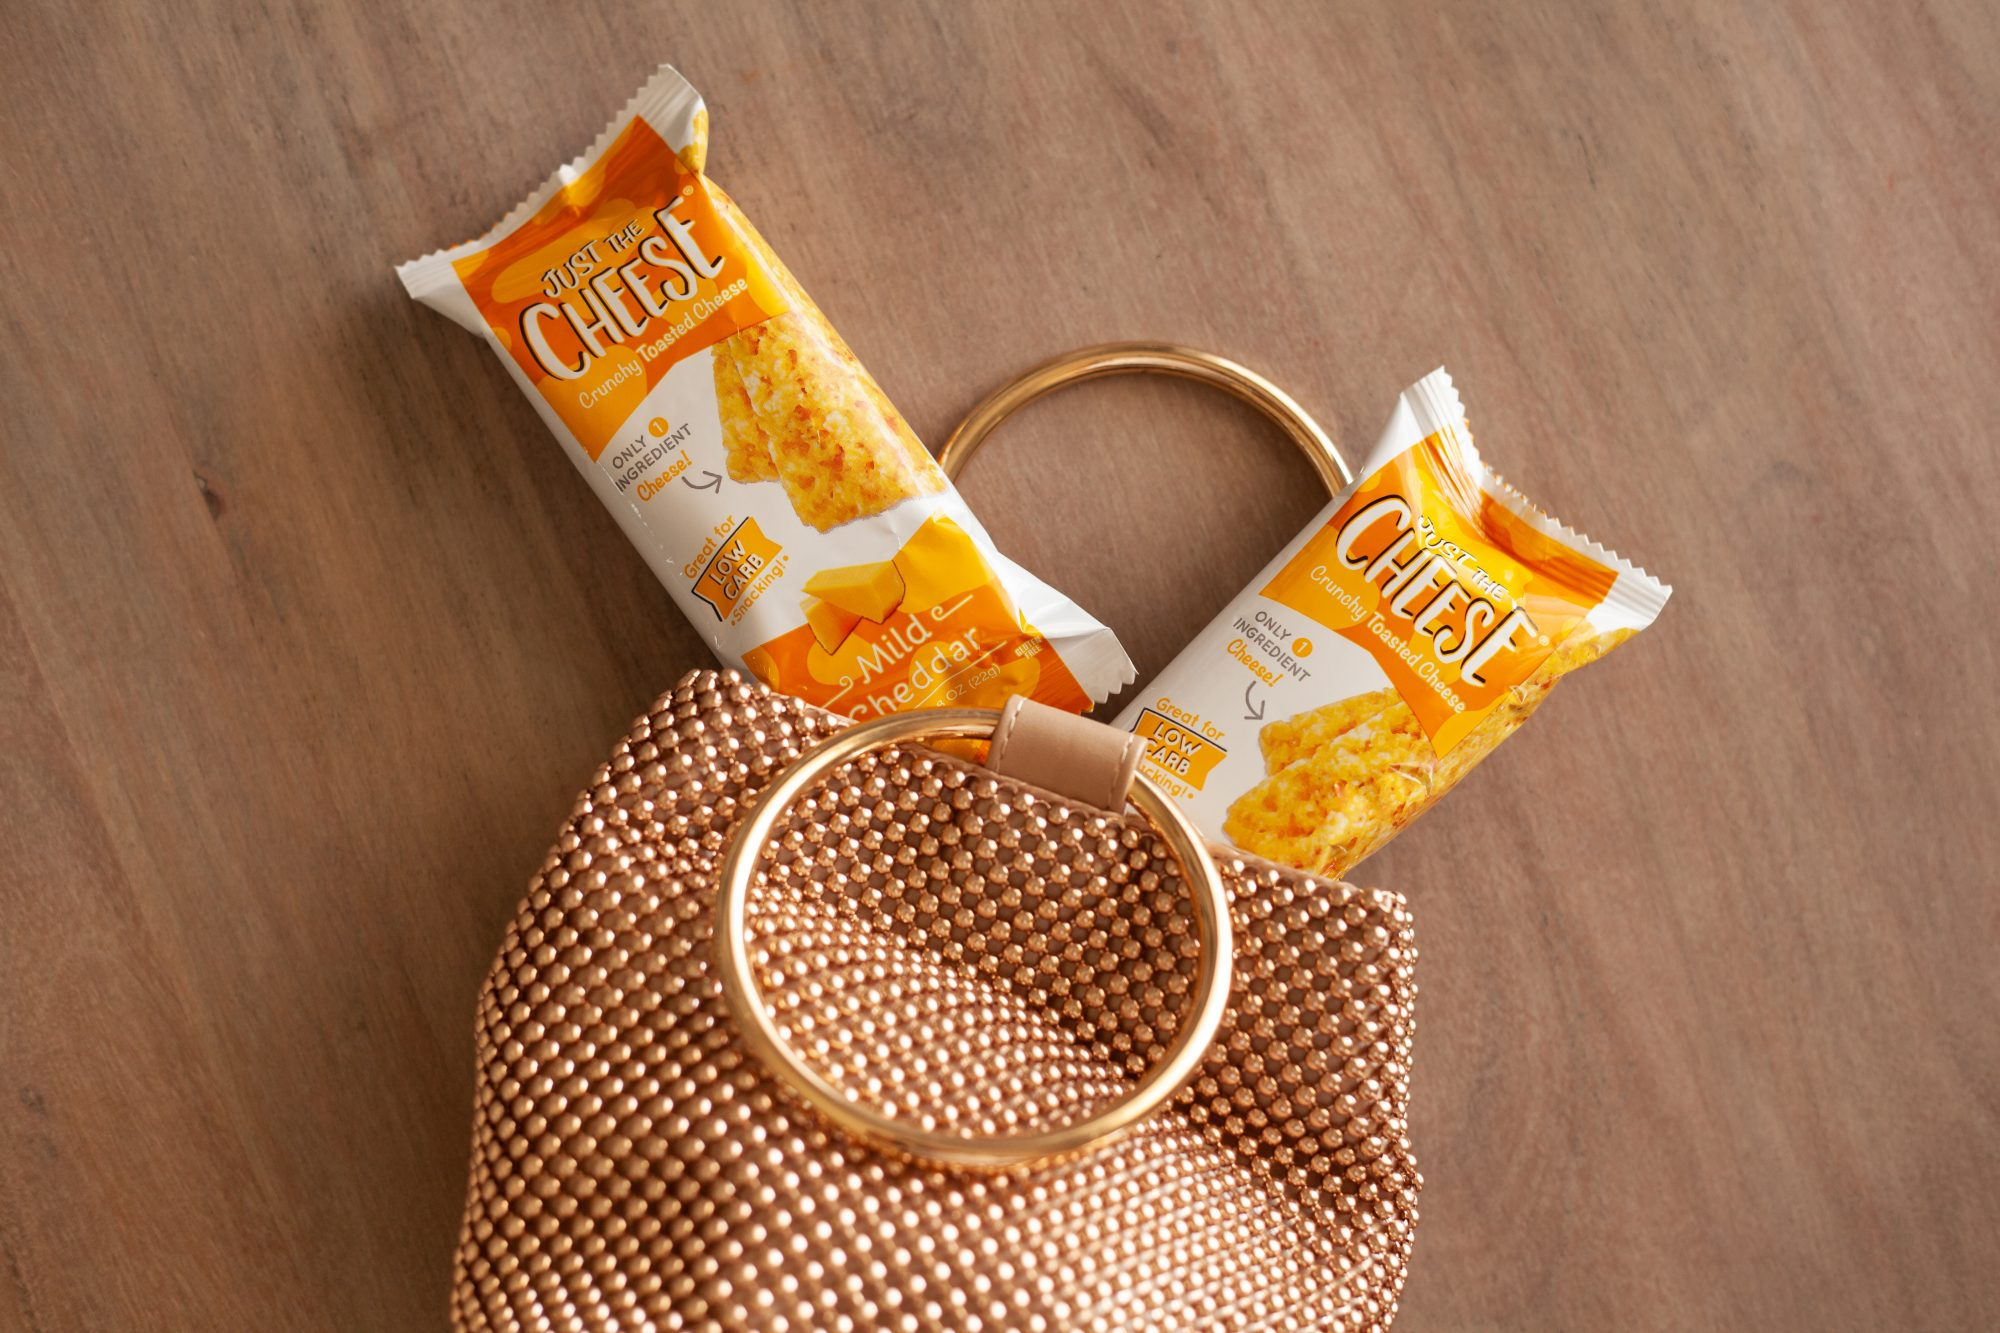 Zero carb cheese bars in a handbag for on-the-go low-carb snacking